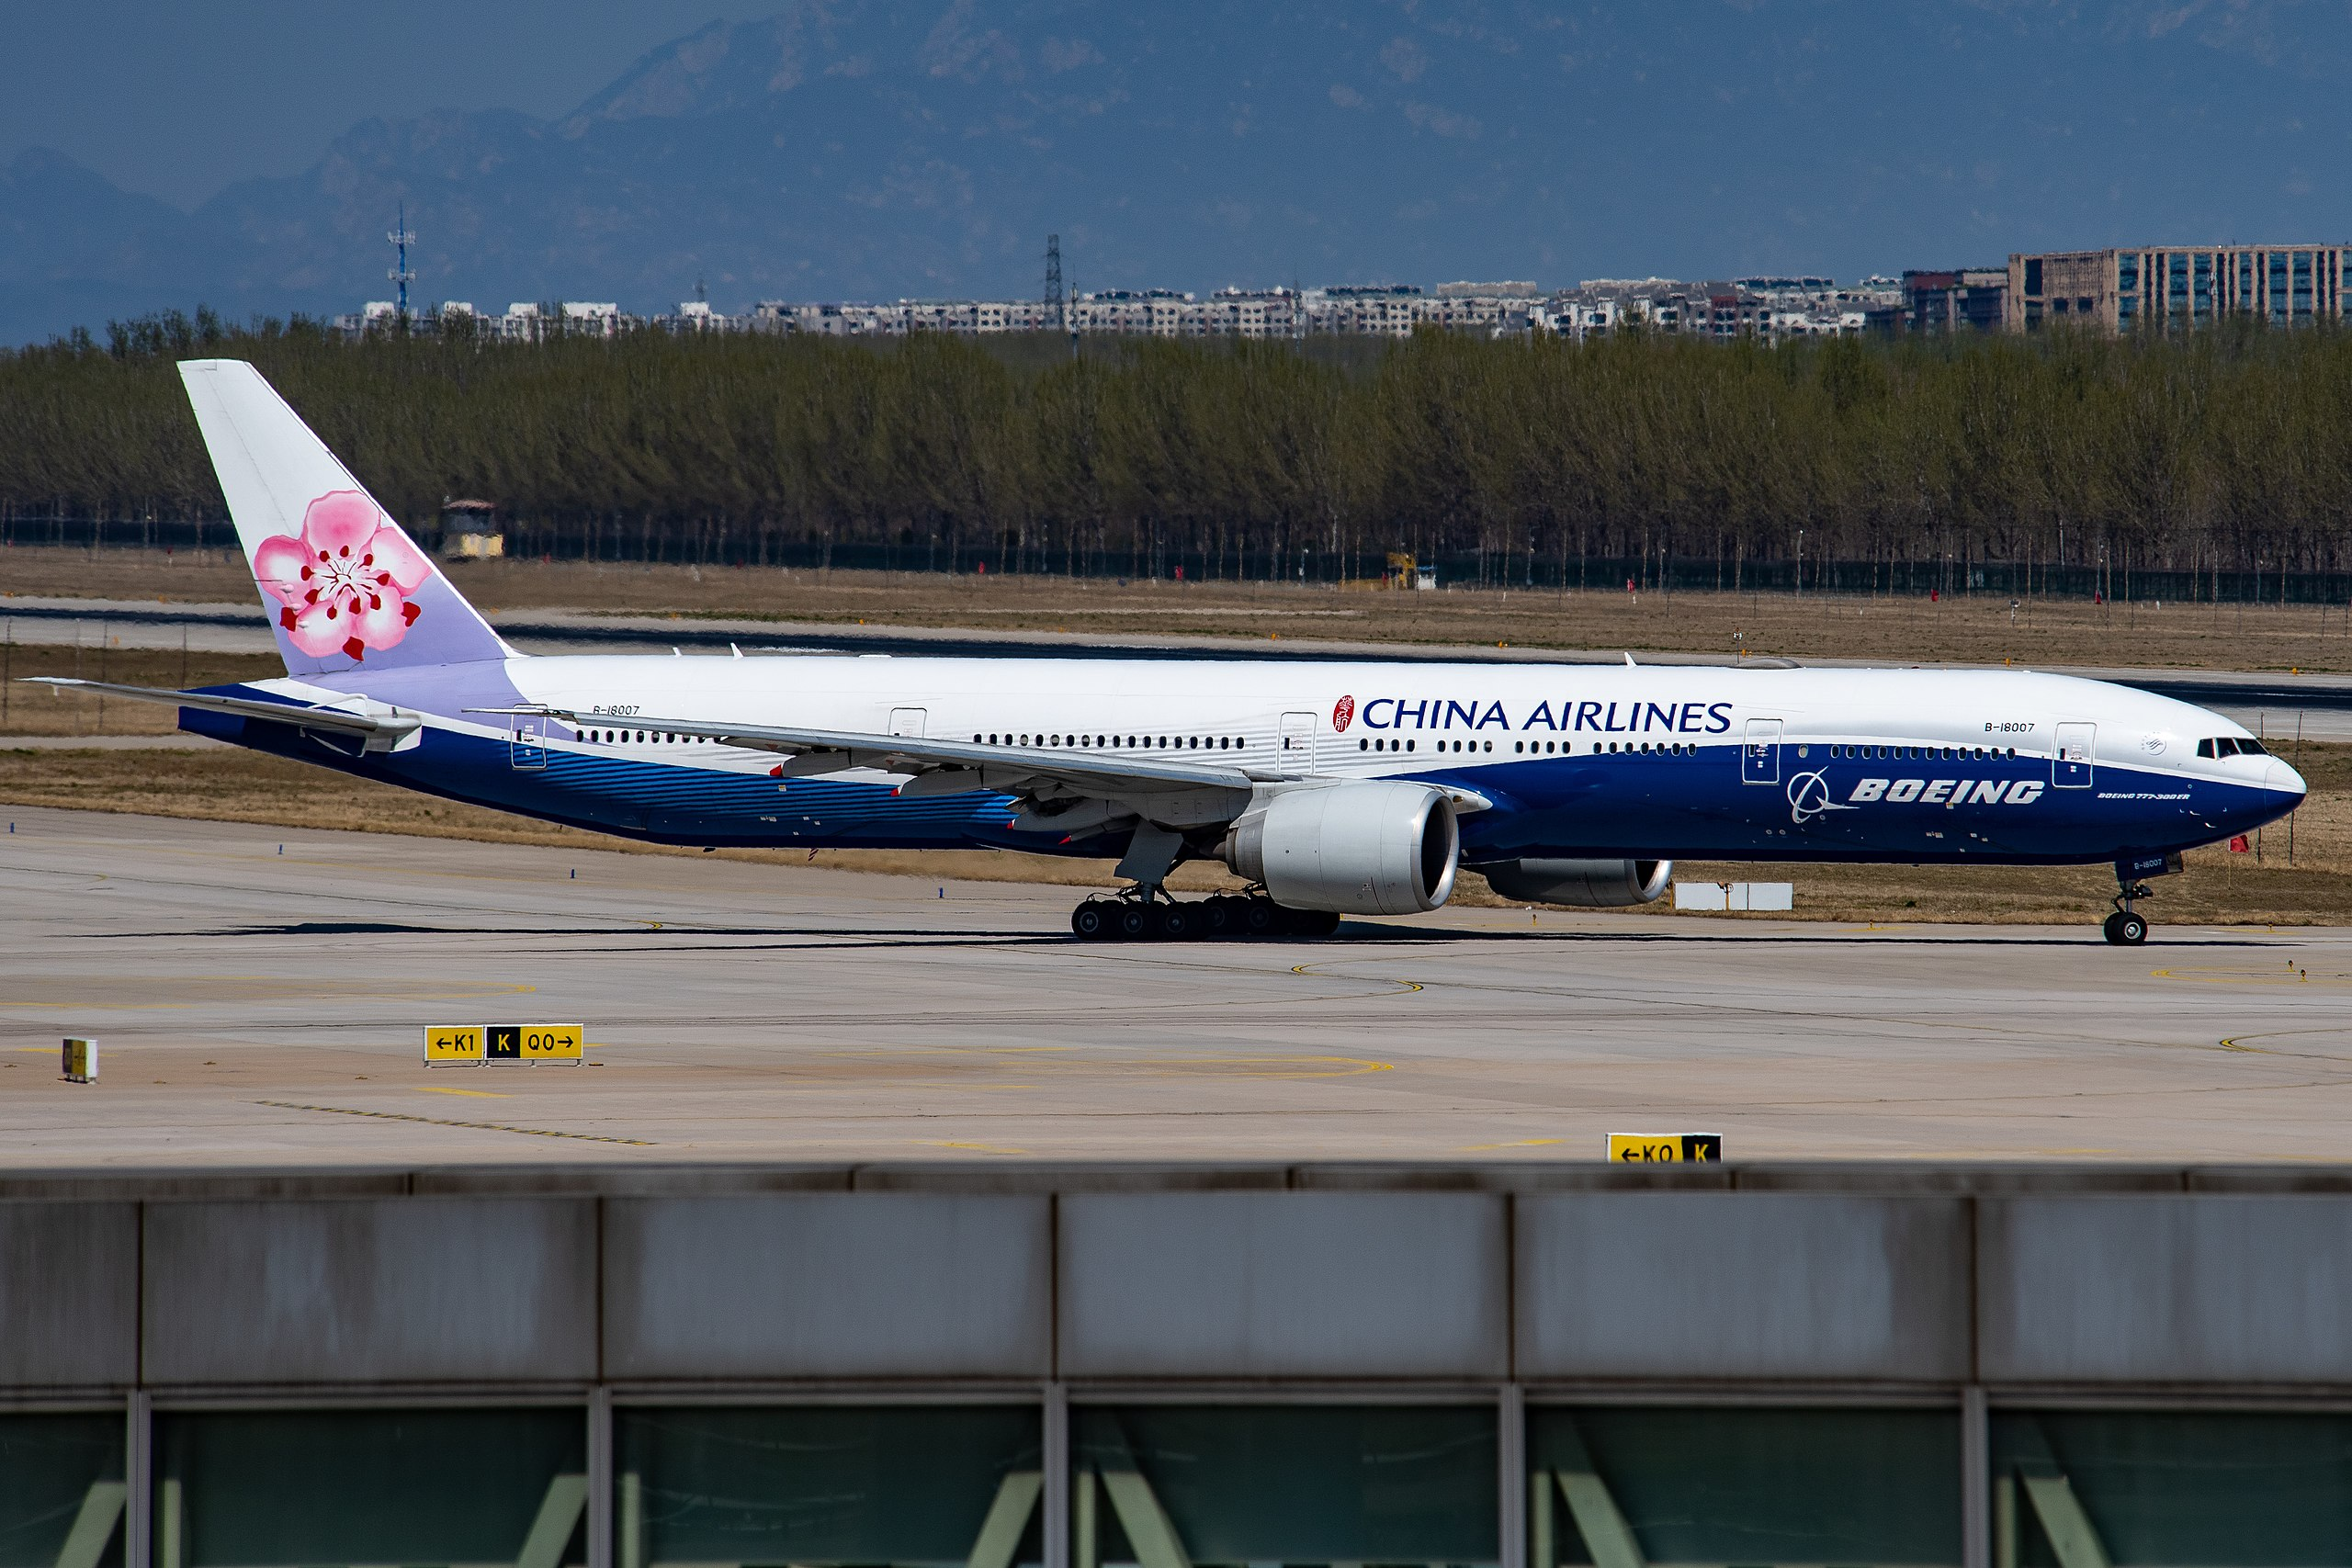 Airlines that made profit in 2020 — China Airlines